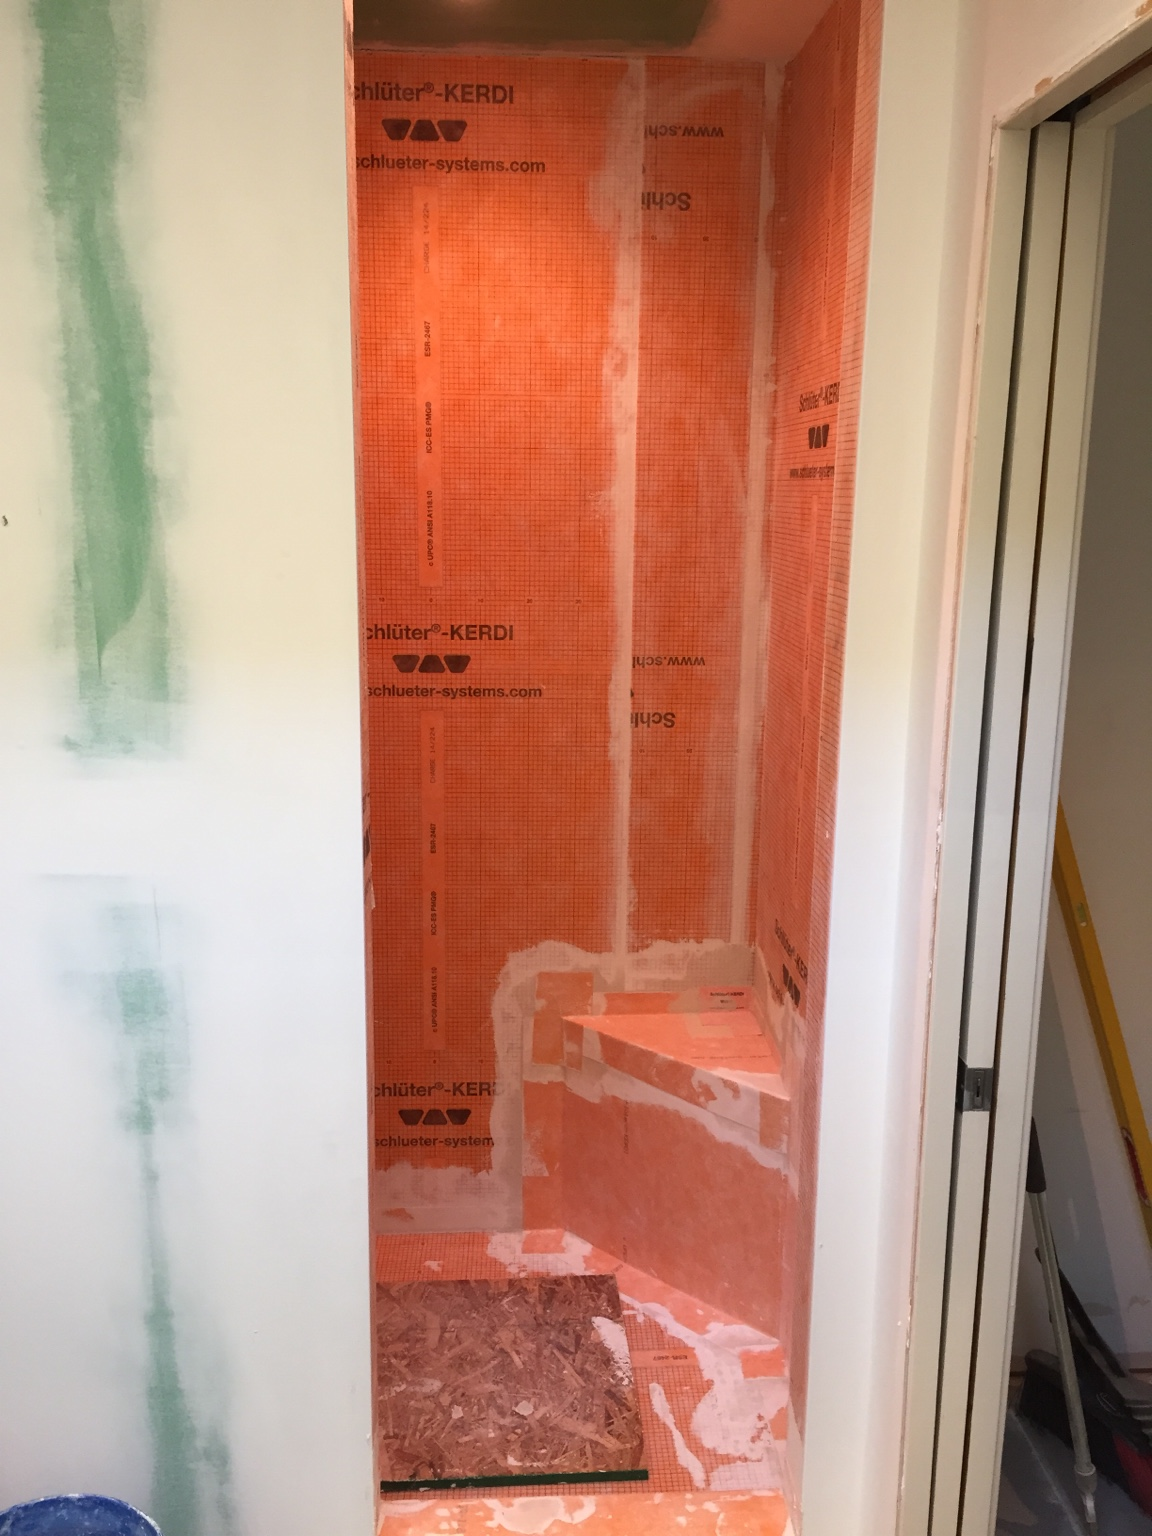 How Long To Waterproof Typical Shower With Kerdi. - Tiling ...